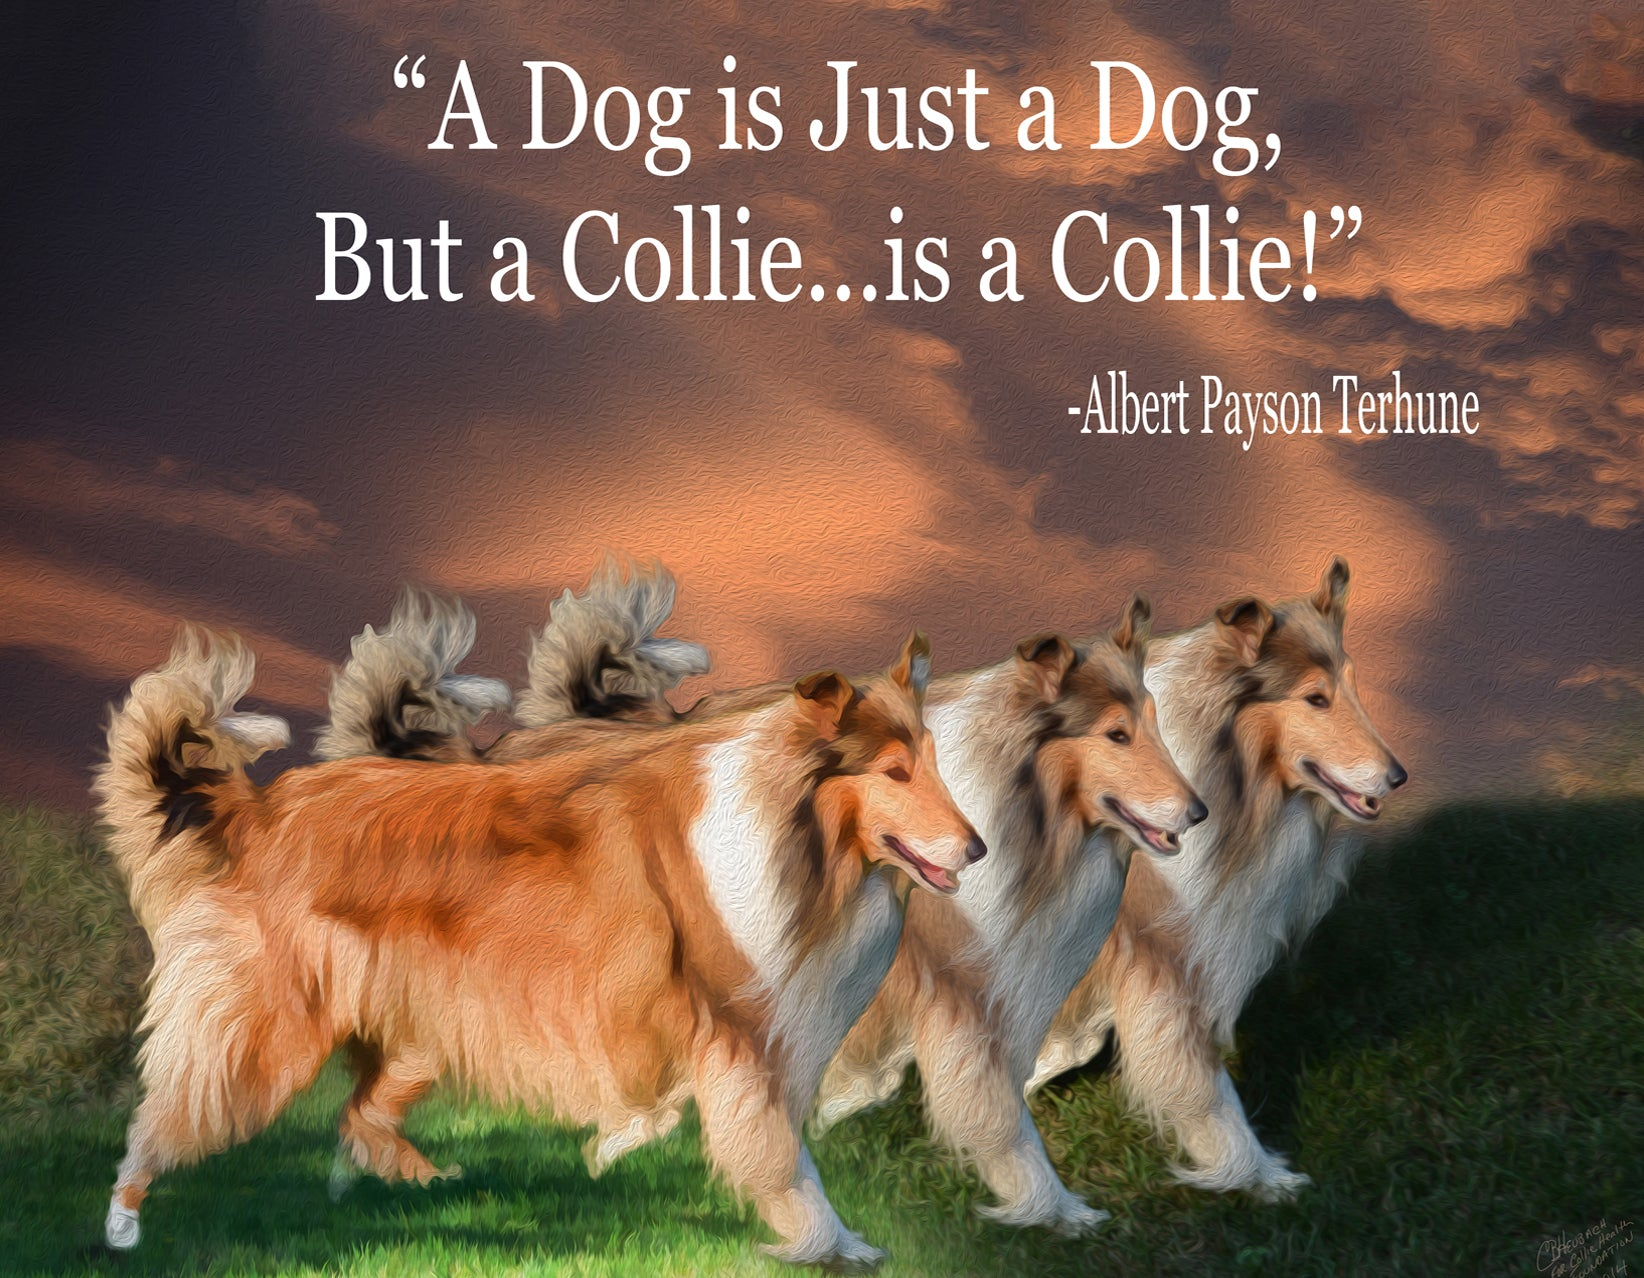 A Dog is a Dog, but a Collie is a Collie!  8 Note Cards